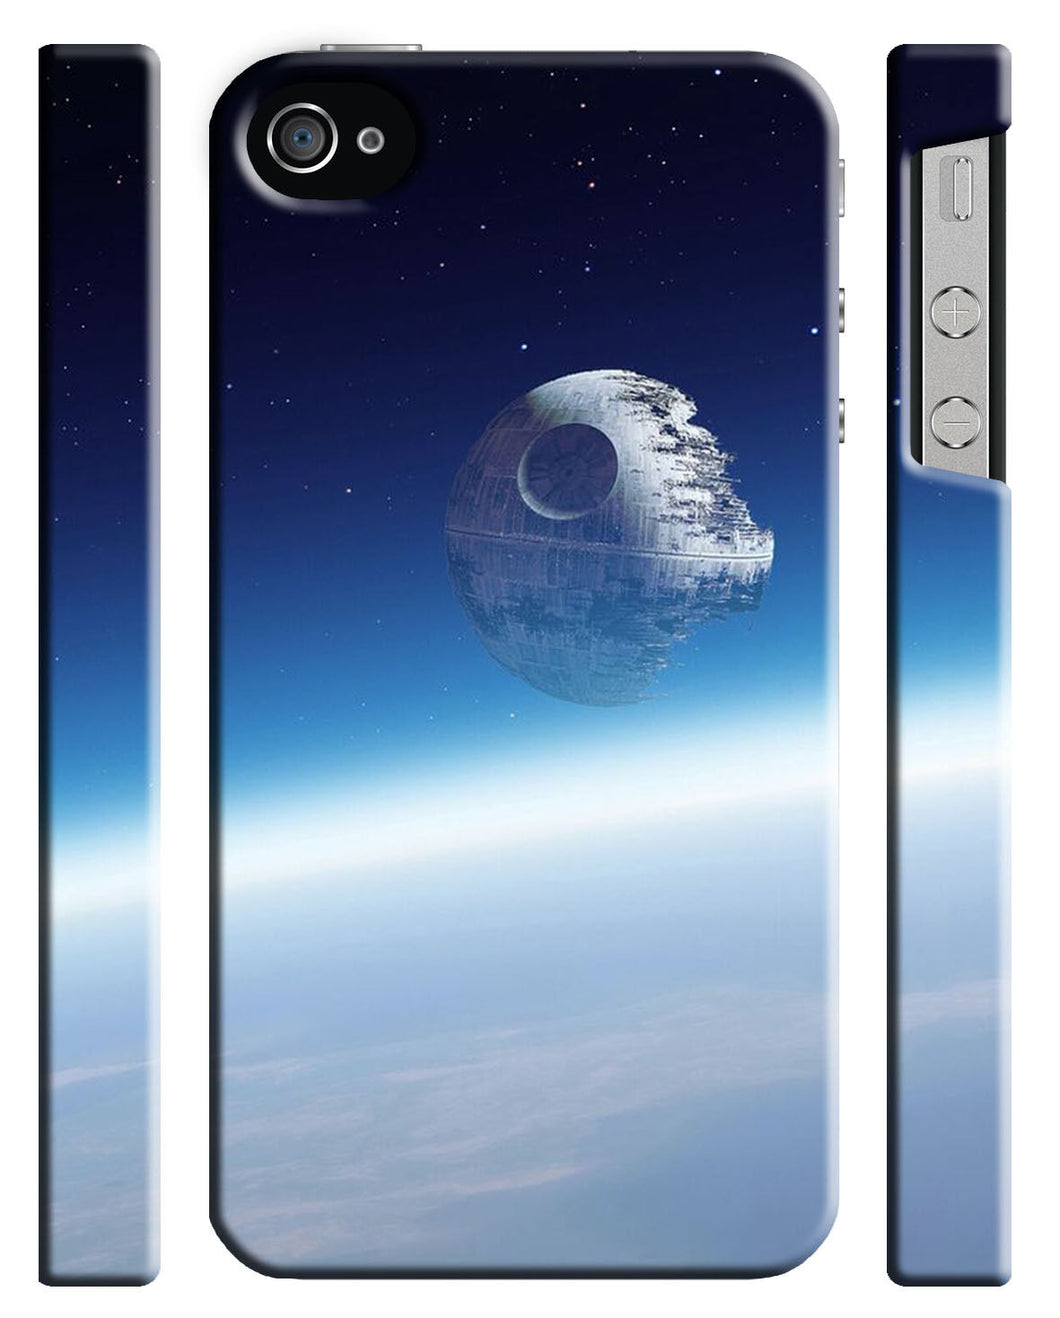 Star Wars Death Star Iphone 4s 5 6 7 8 X XS Max XR 11 Pro Plus Case 131